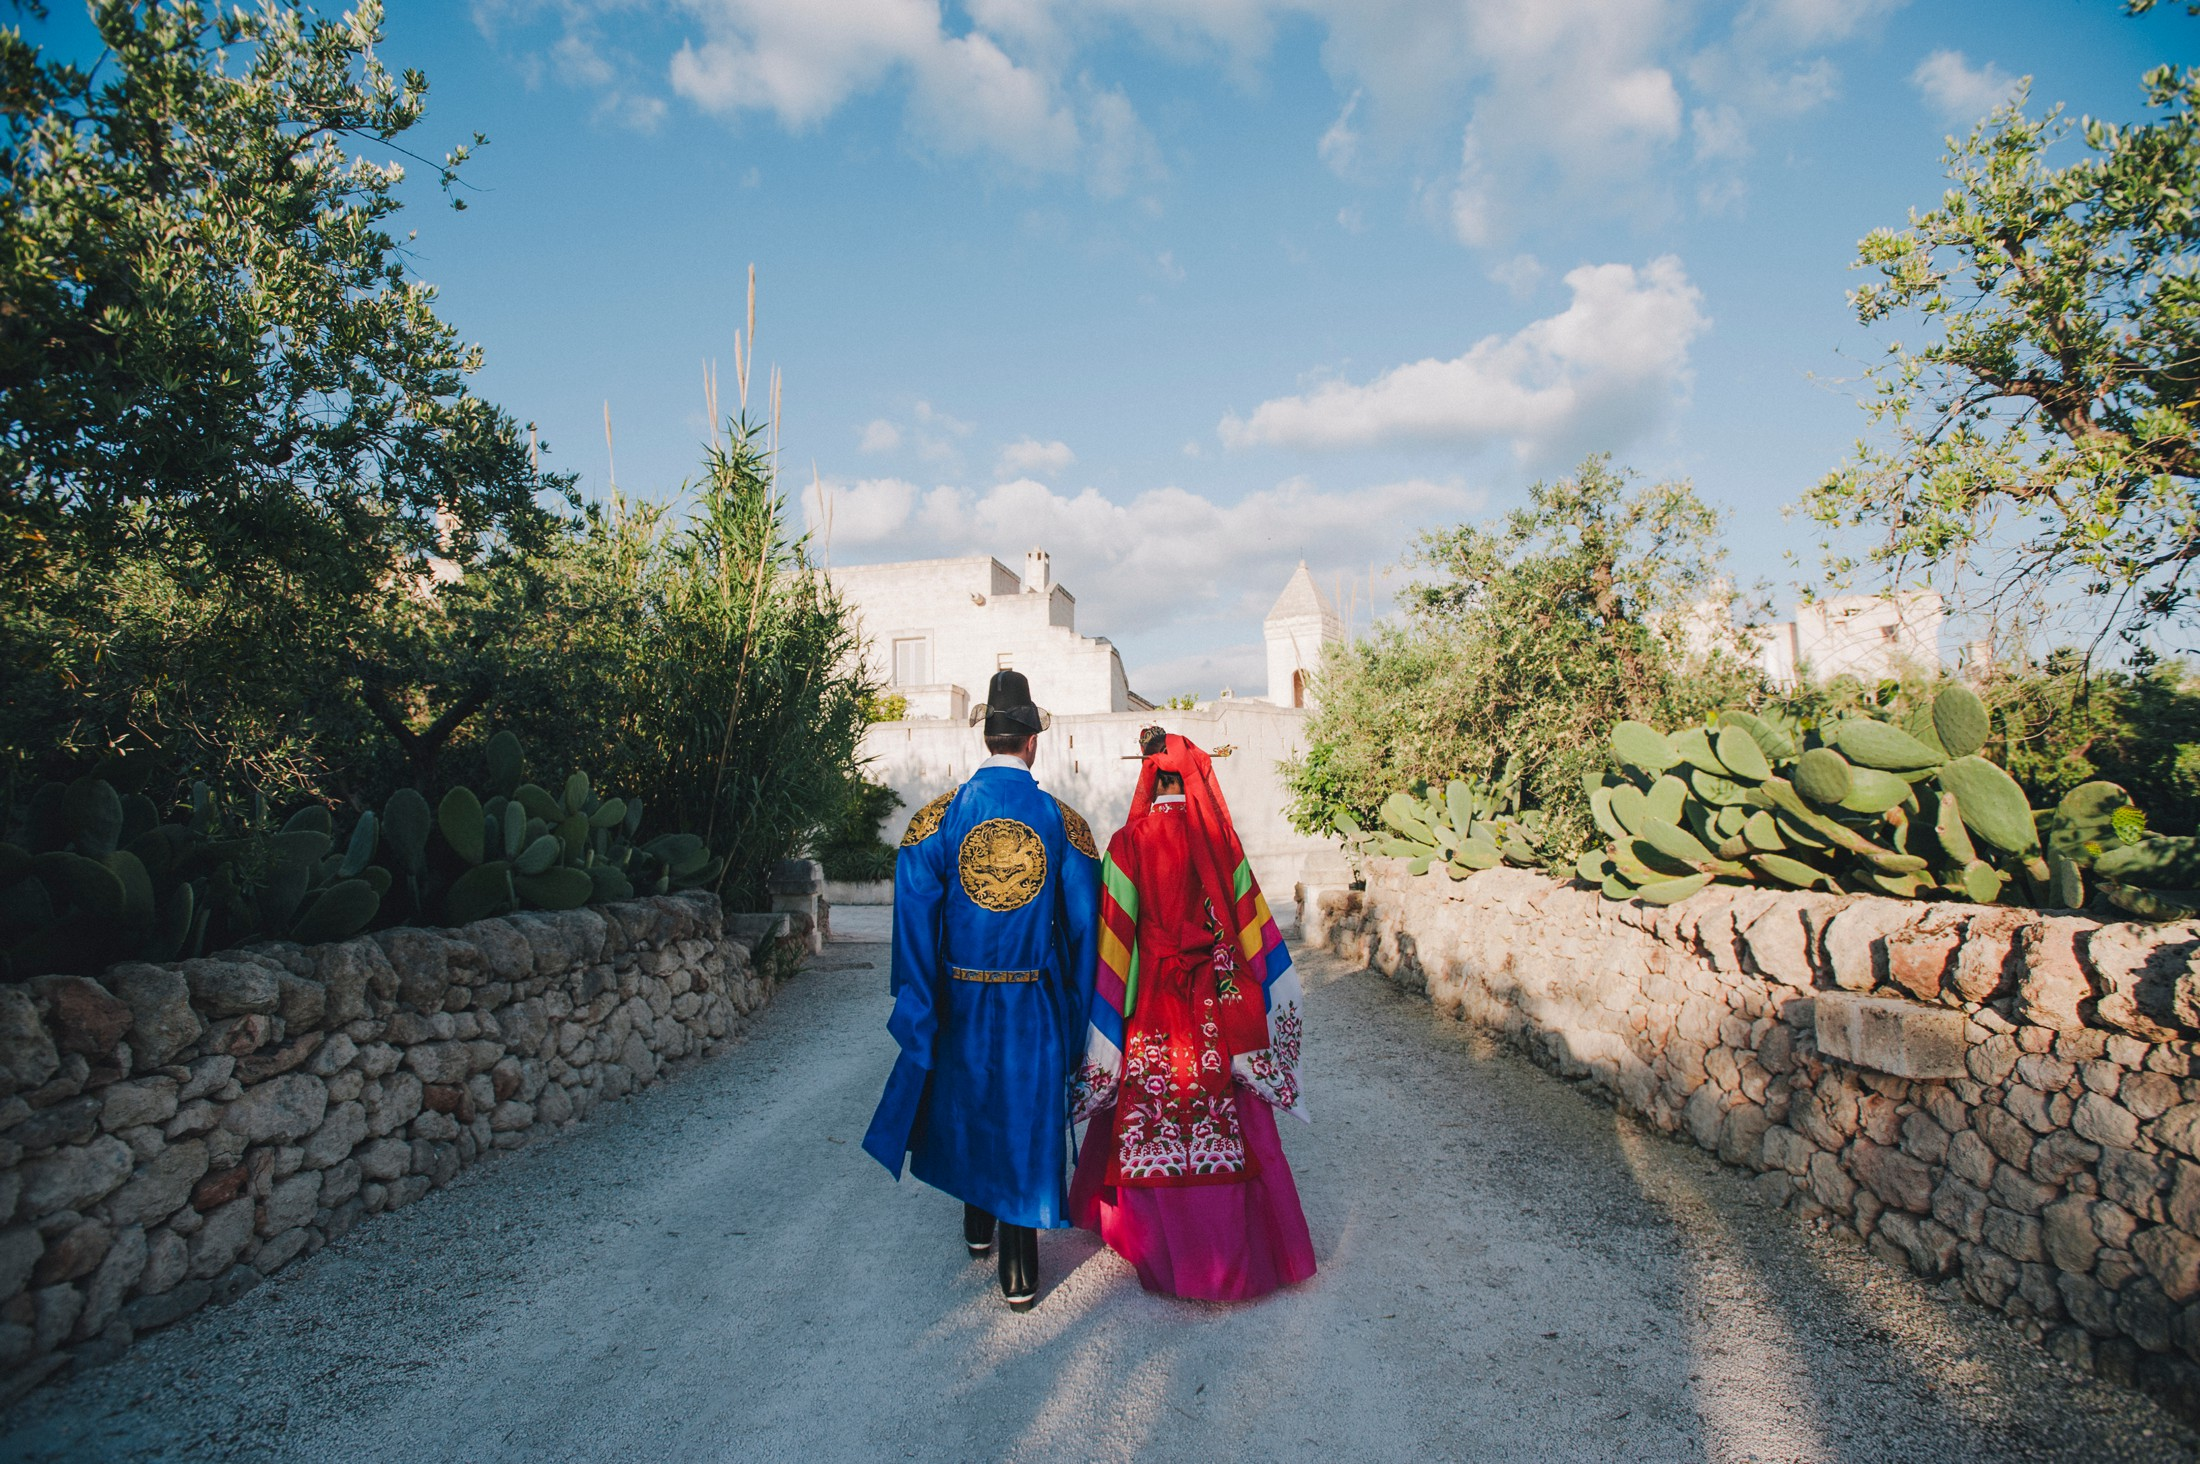 bride and groom walking to the wedding ceremony in Borgo Egnazia Apulia